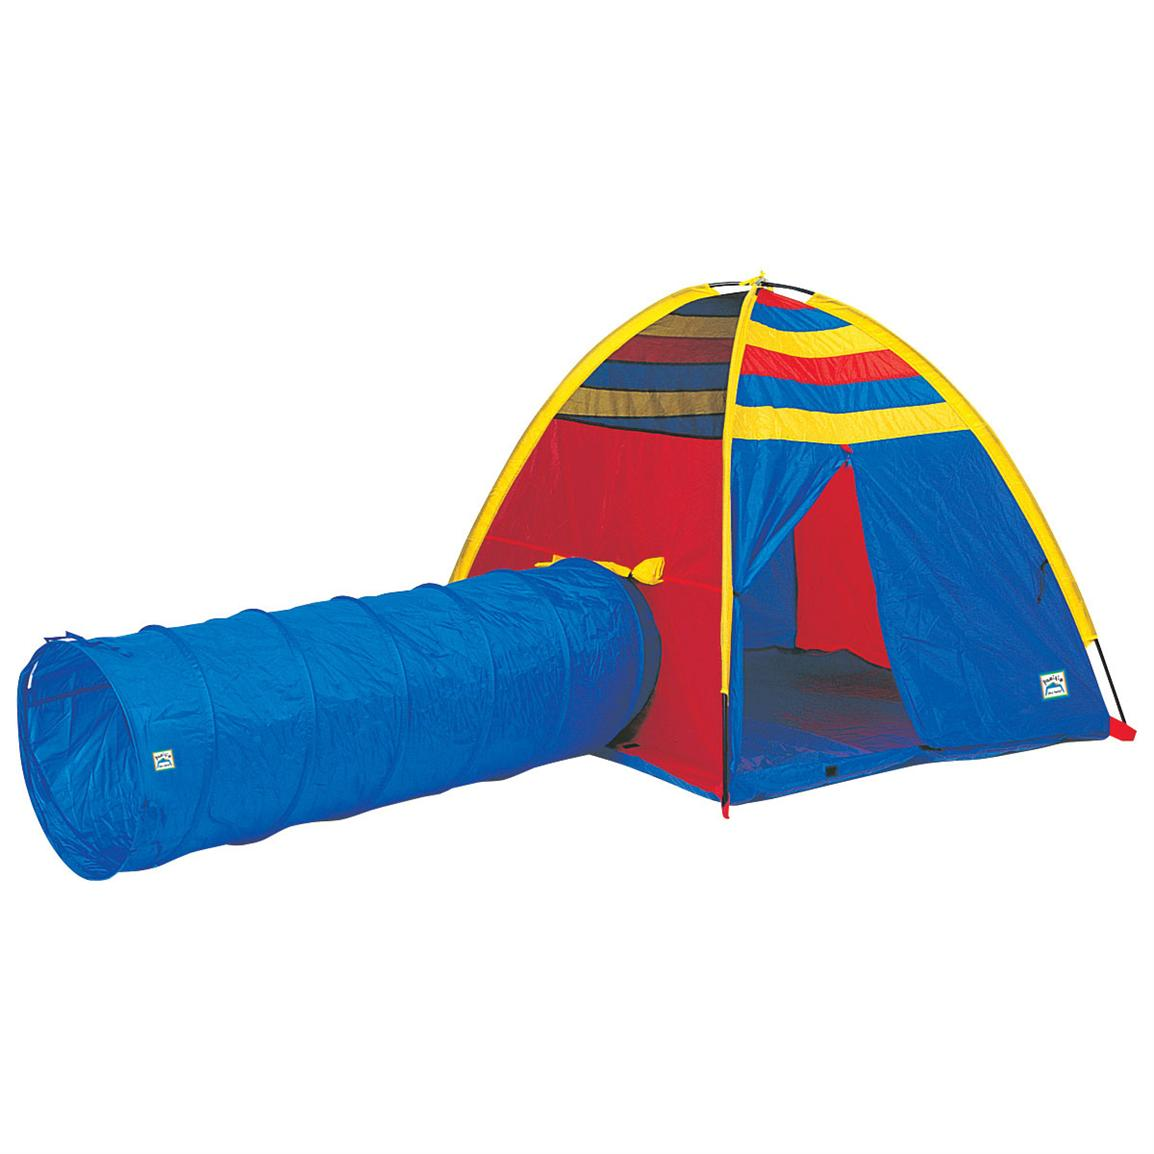 Pacific Play Tents Find-Me Tent and Tunnel Combo  sc 1 st  Sportsmanu0027s Guide & Pacific Play Tents Neon Find - Me Tent and Tunnel Combo - 116329 ...